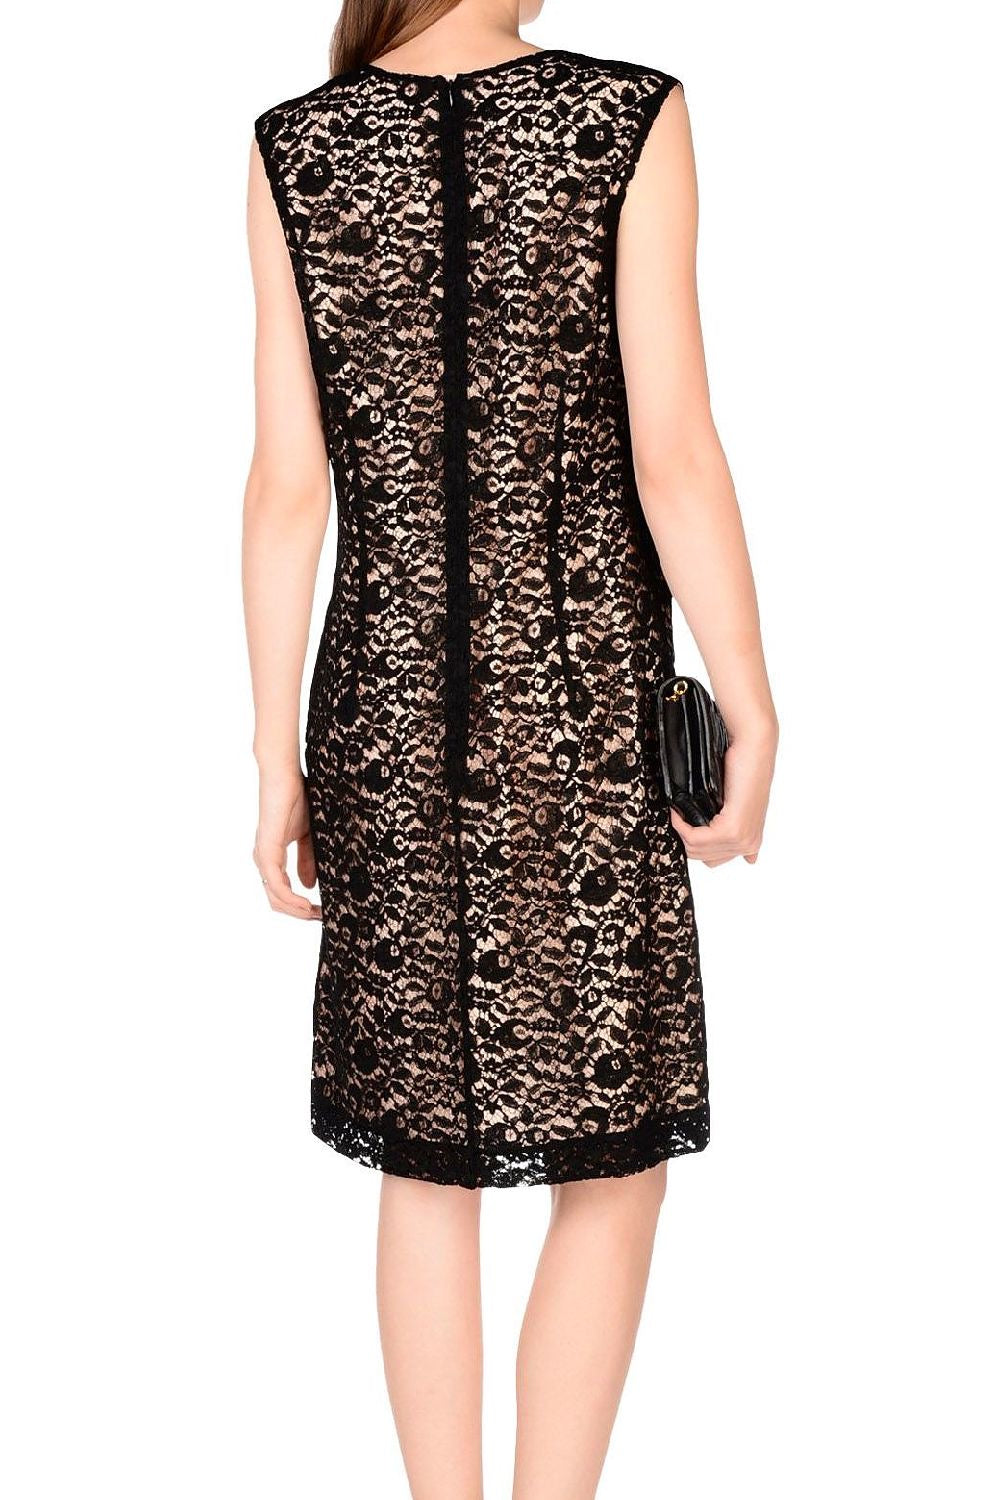 Lace Dress - The Bobby Boga